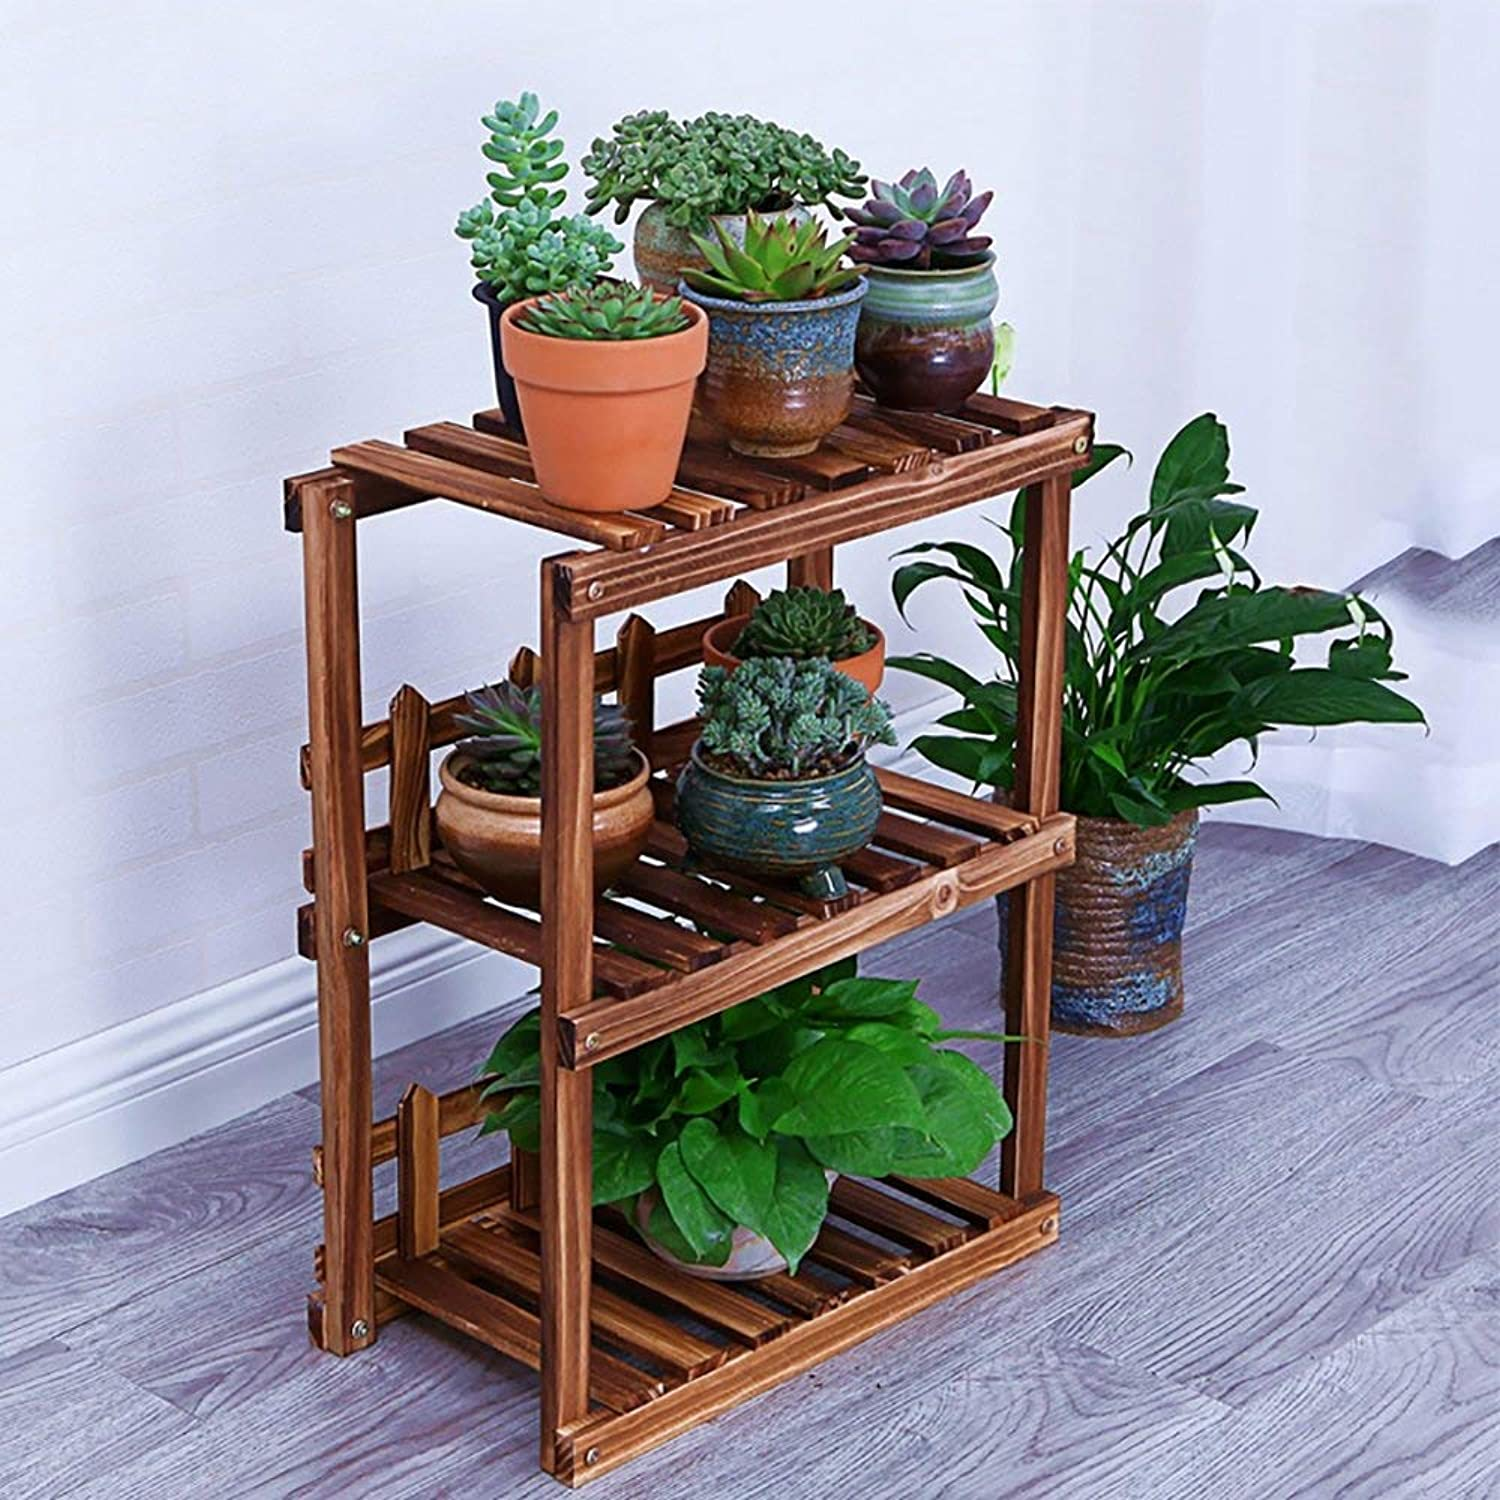 Shelves Organizer for Books Bookcase Bookshelf Ends Flower Stand Shelf Multi-Layer Combination Floor-Standing Plant Stand Indoor Living Room Outdoor Succulents Flower Pot Shelf Strong Sturdy, QiXian